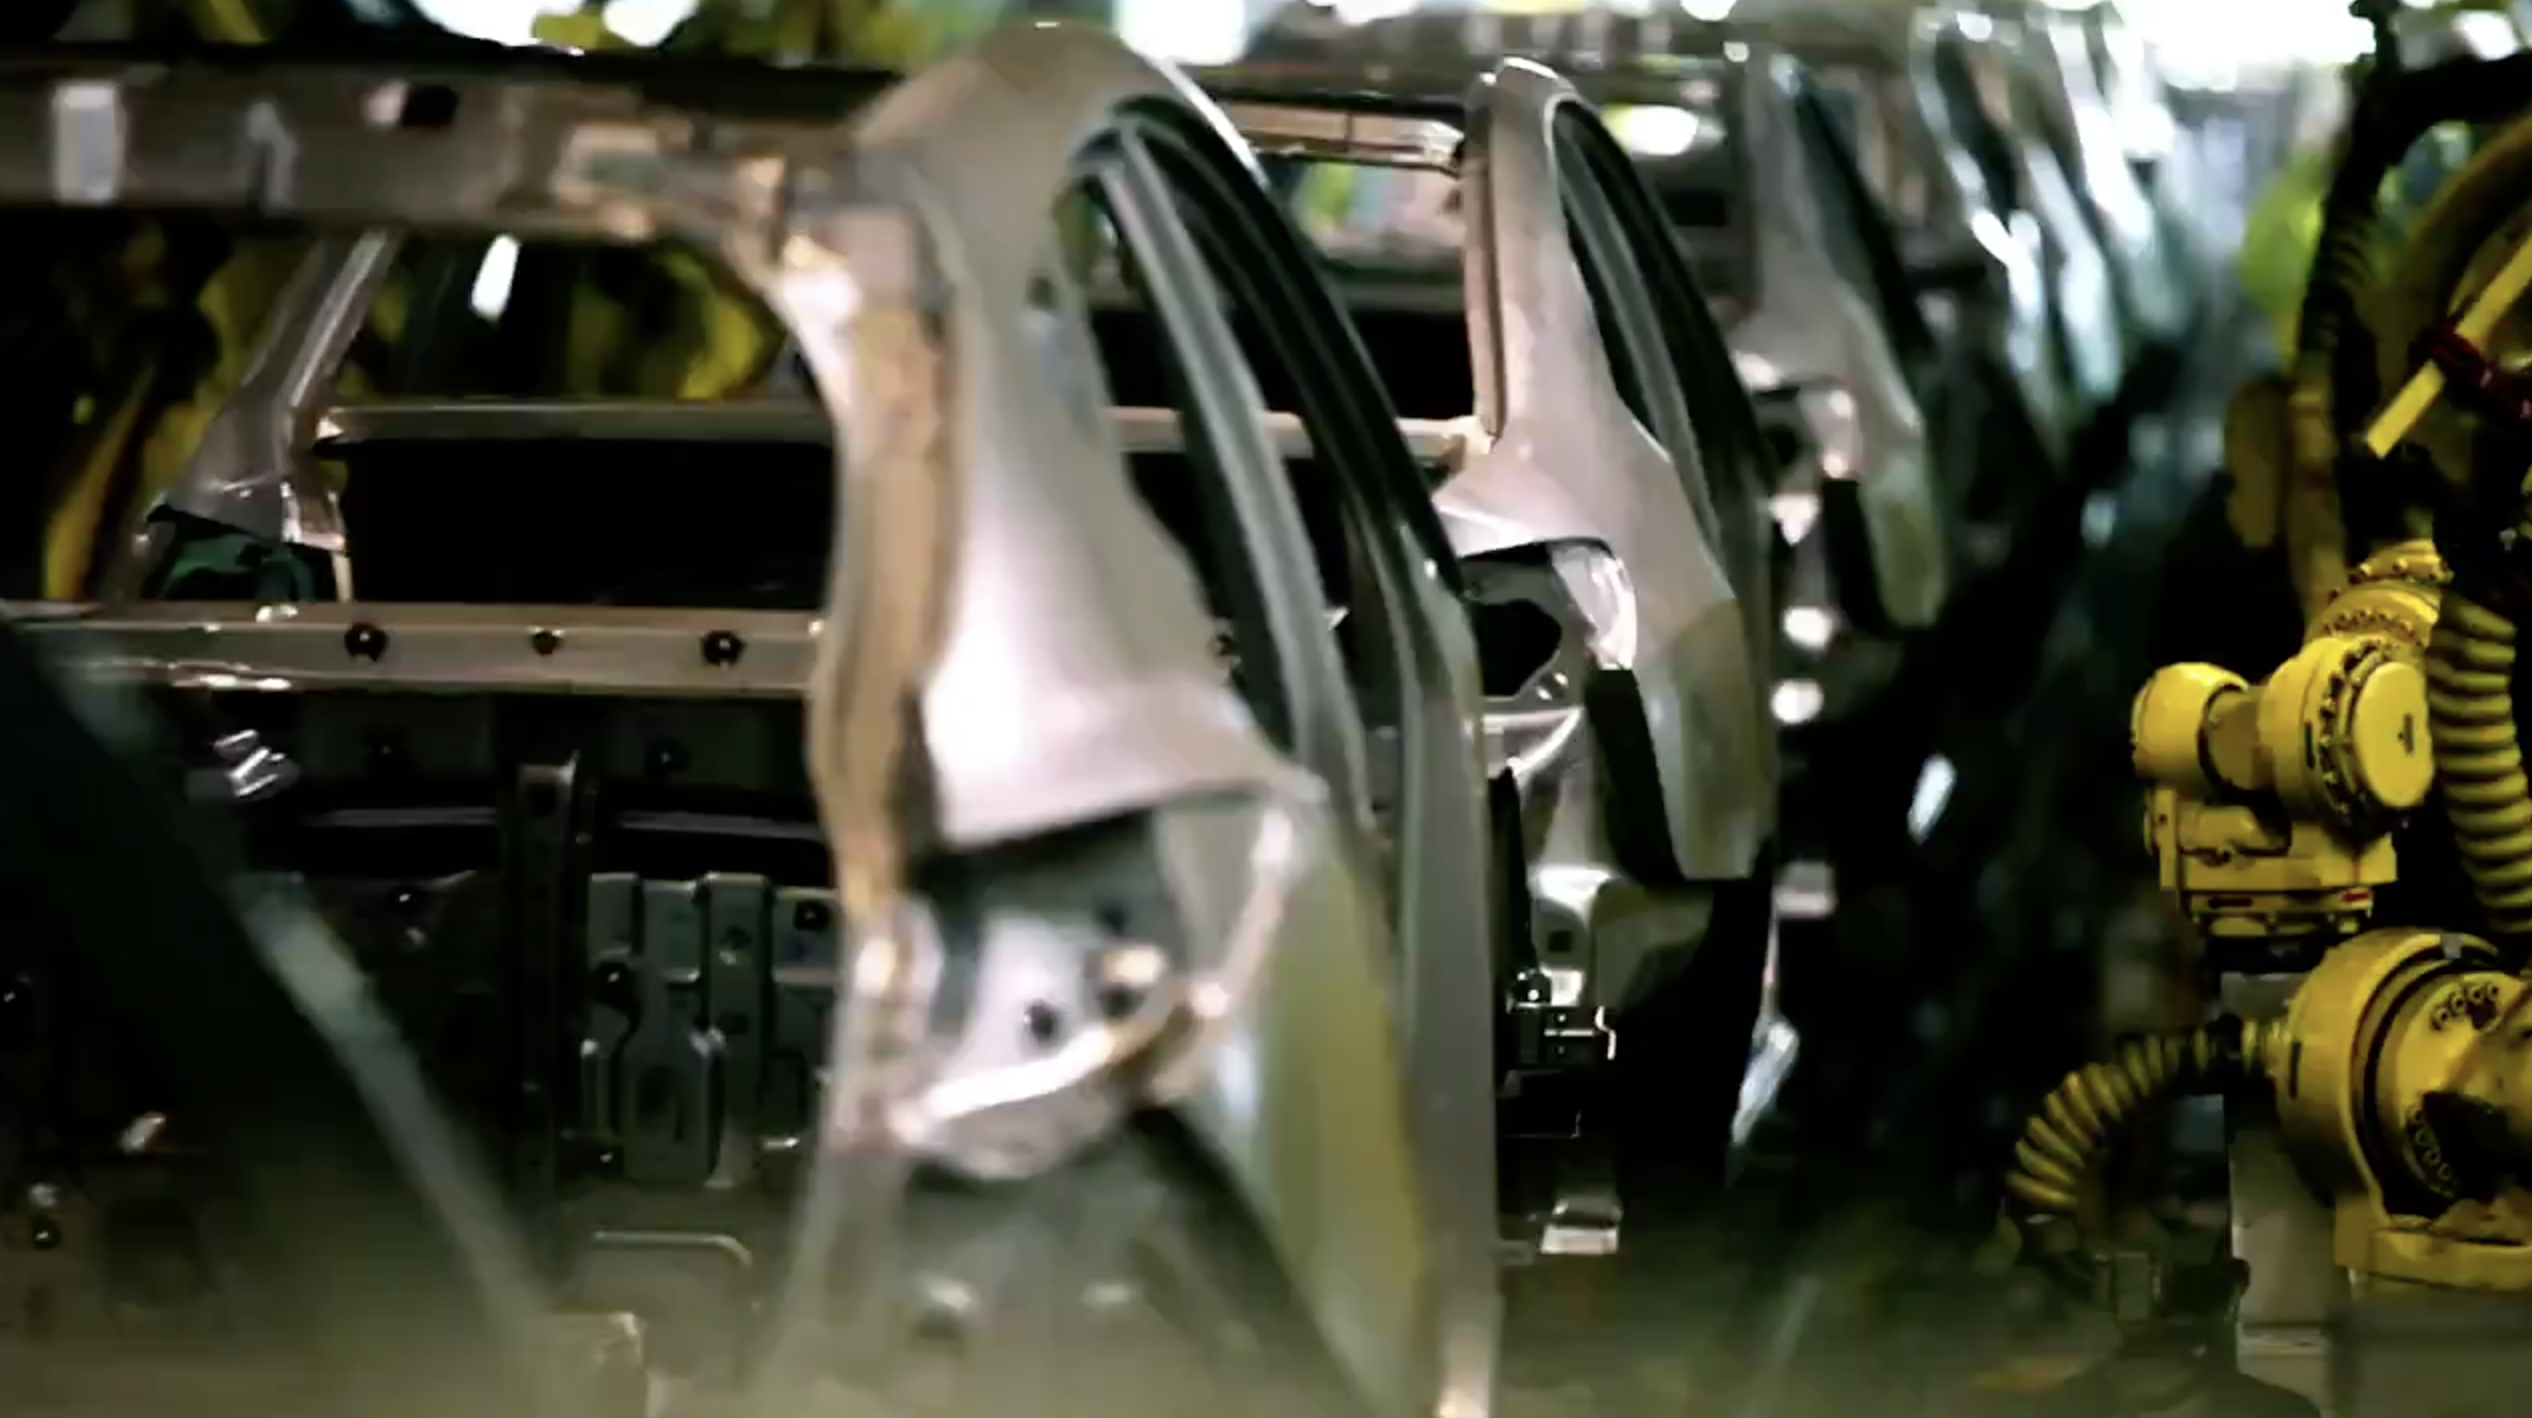 Car manufacturing plant machines working